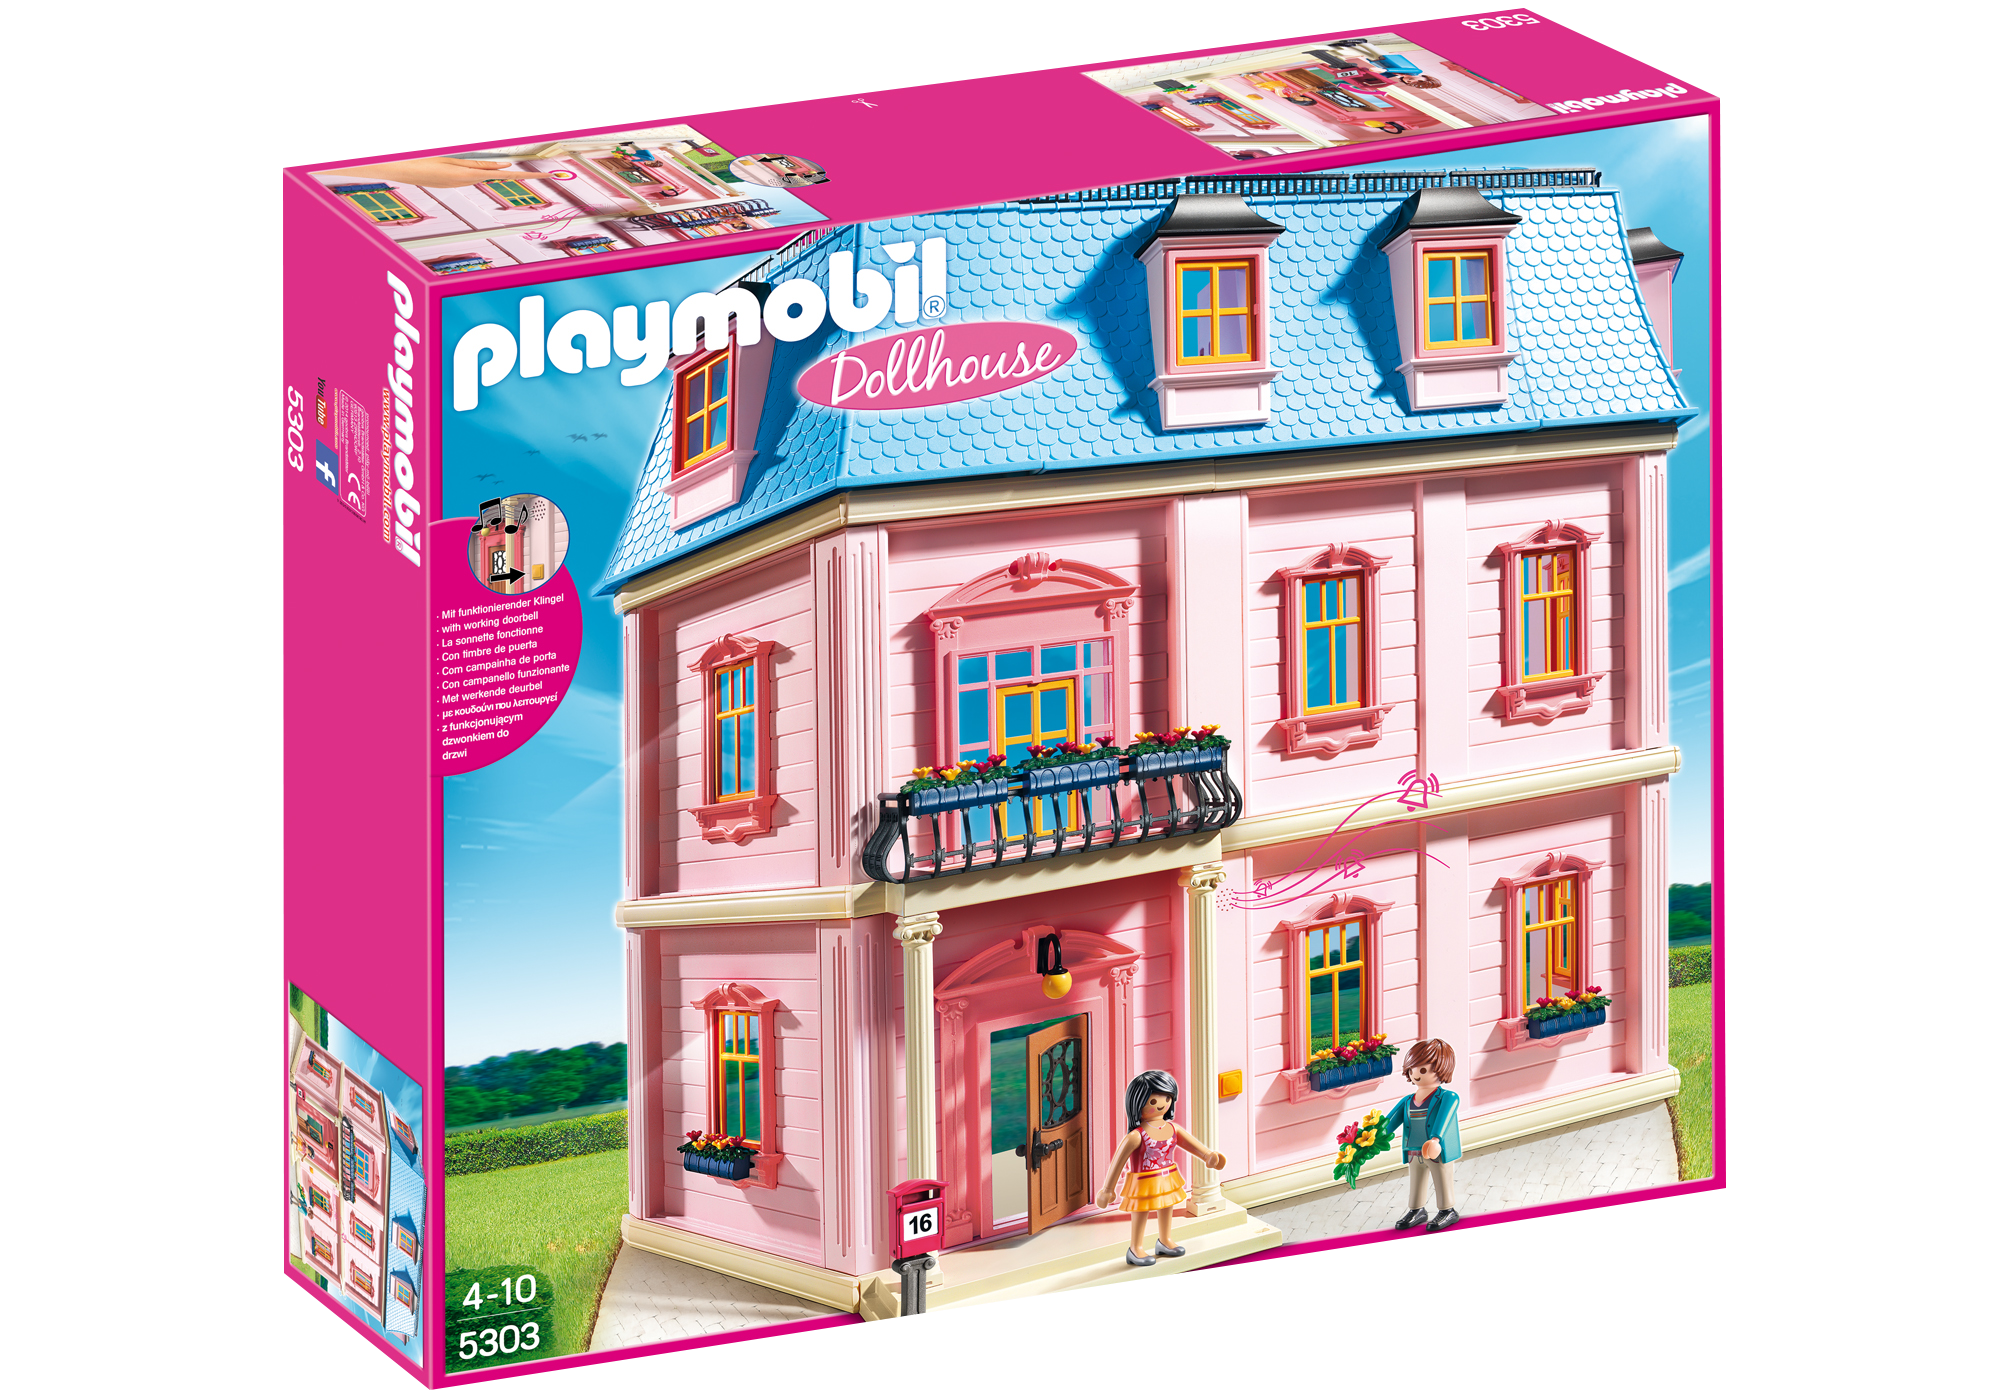 Httpmedia playmobil comiplaymobil5303 product box front